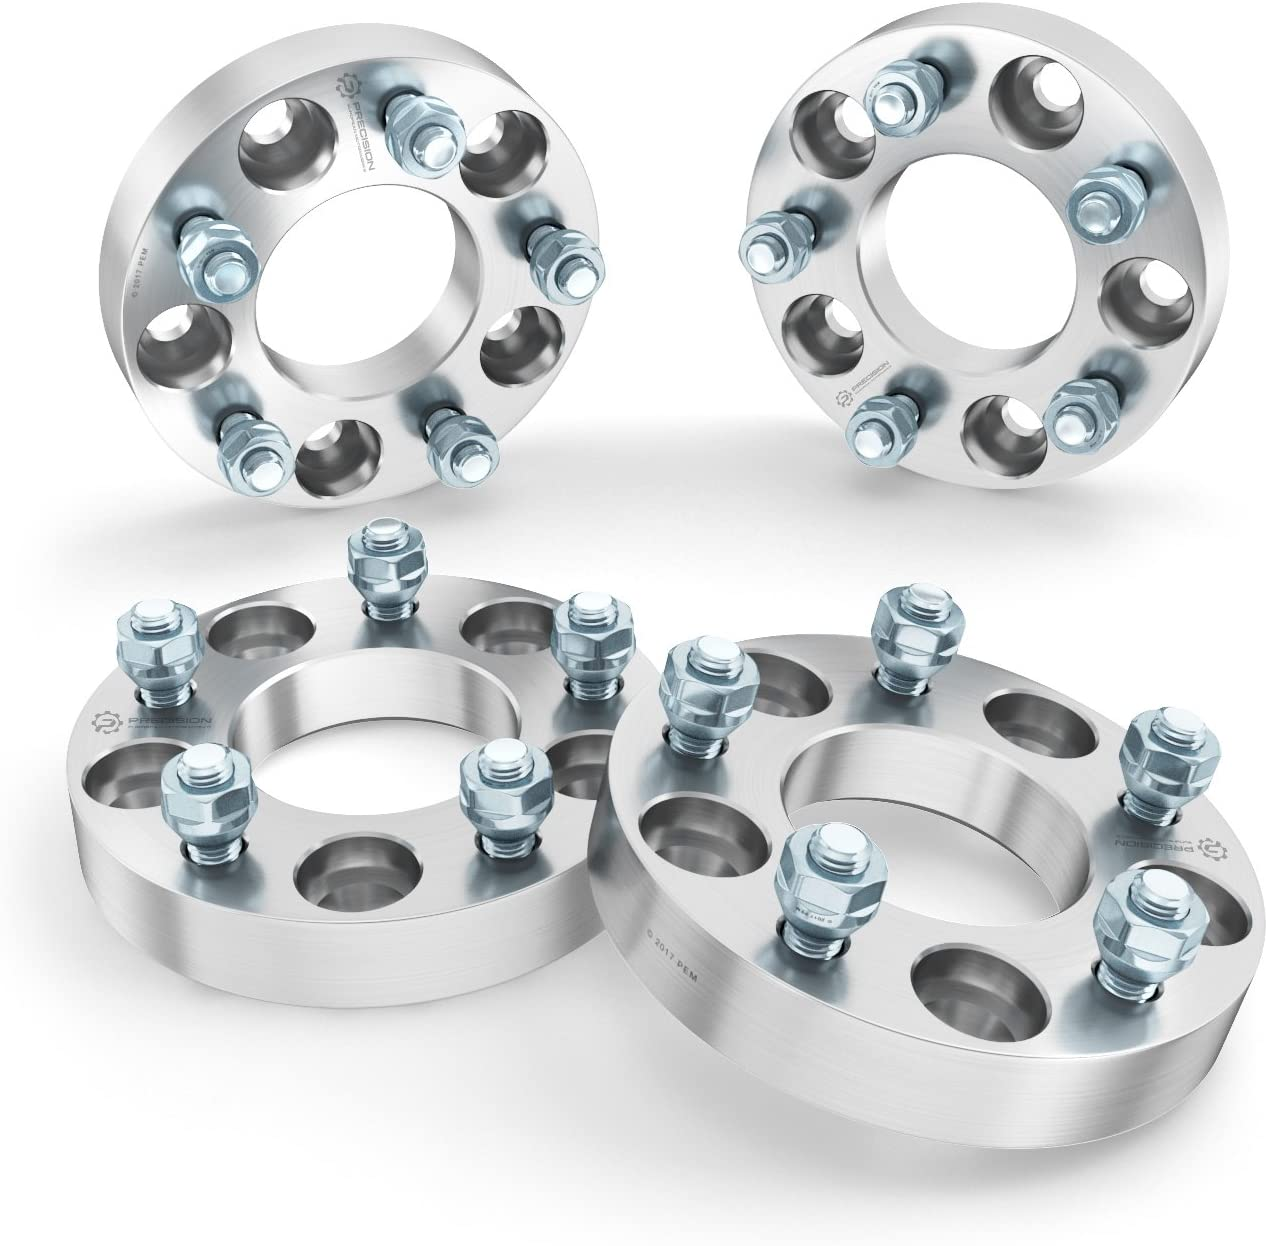 88mm Bore 1.25 inch Wheel Adapters Spacers Converts 5x5.5 to 5x4.5 Changes Bolt Pattern Fits Dodge Ram 1500 Durango Ford F100 F150 Bronco Silver 4pcs RockTrix 12x1.5 Studs 5x139.7 to 5x114.3